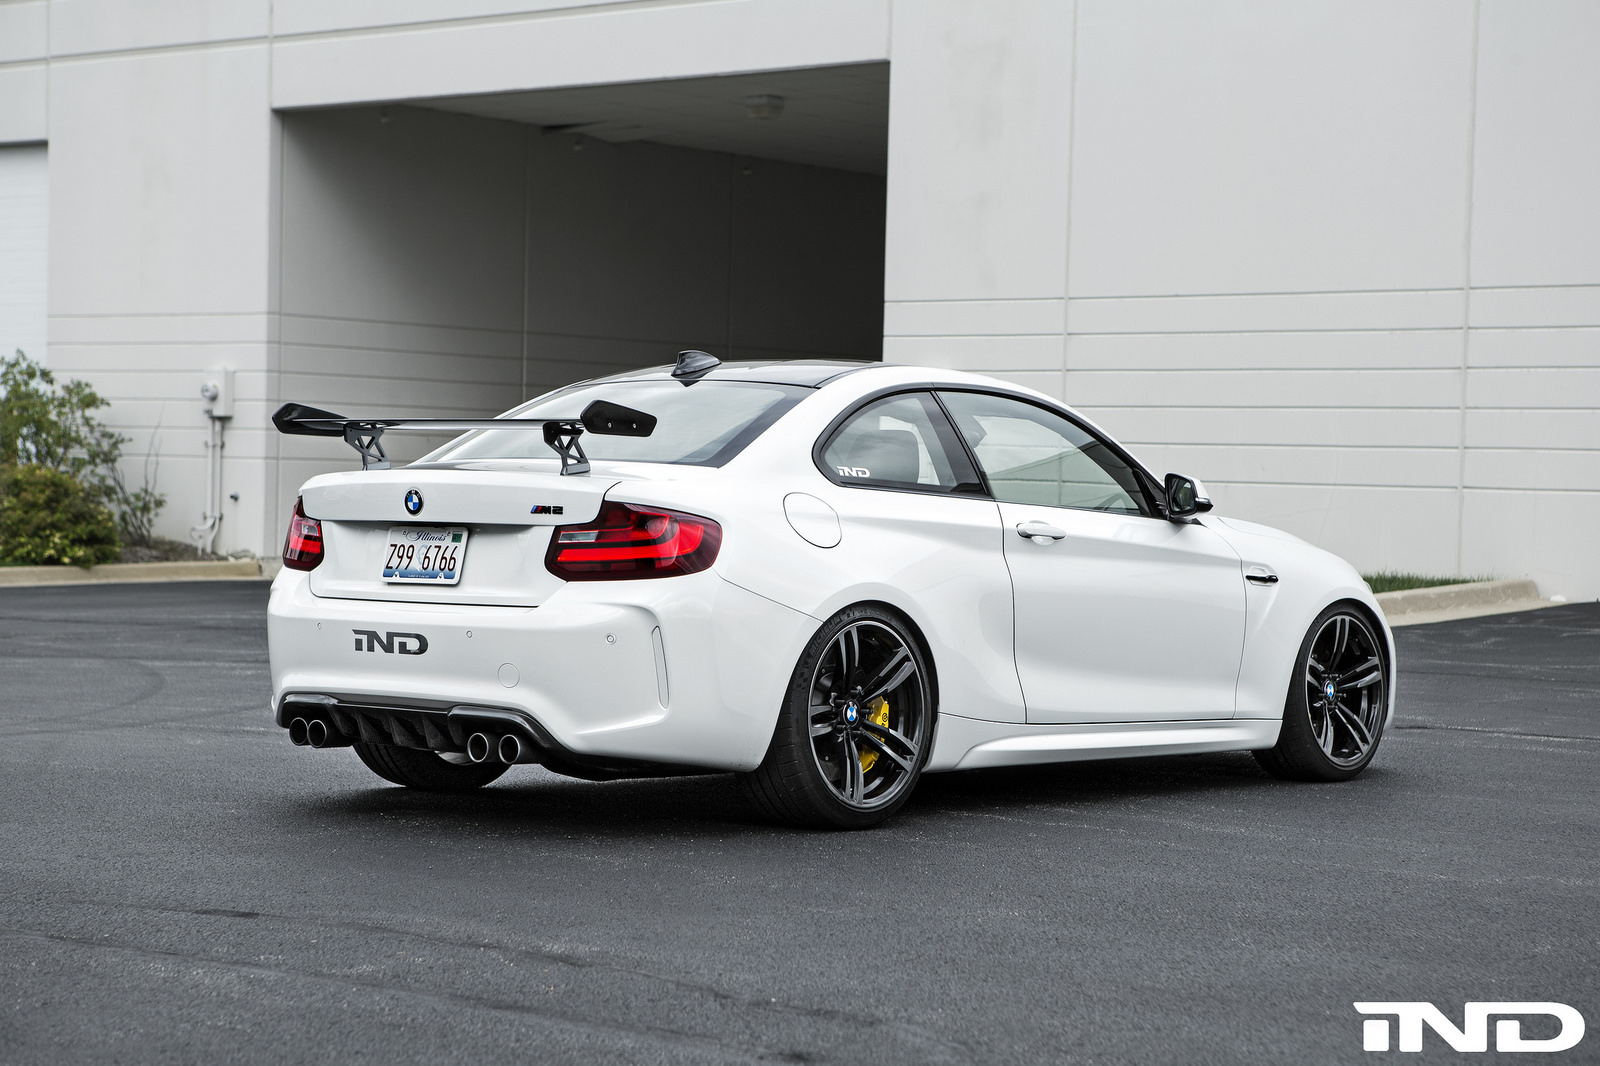 Alpine White BMW M2 Gets Aftermarket Upgrades Image 6